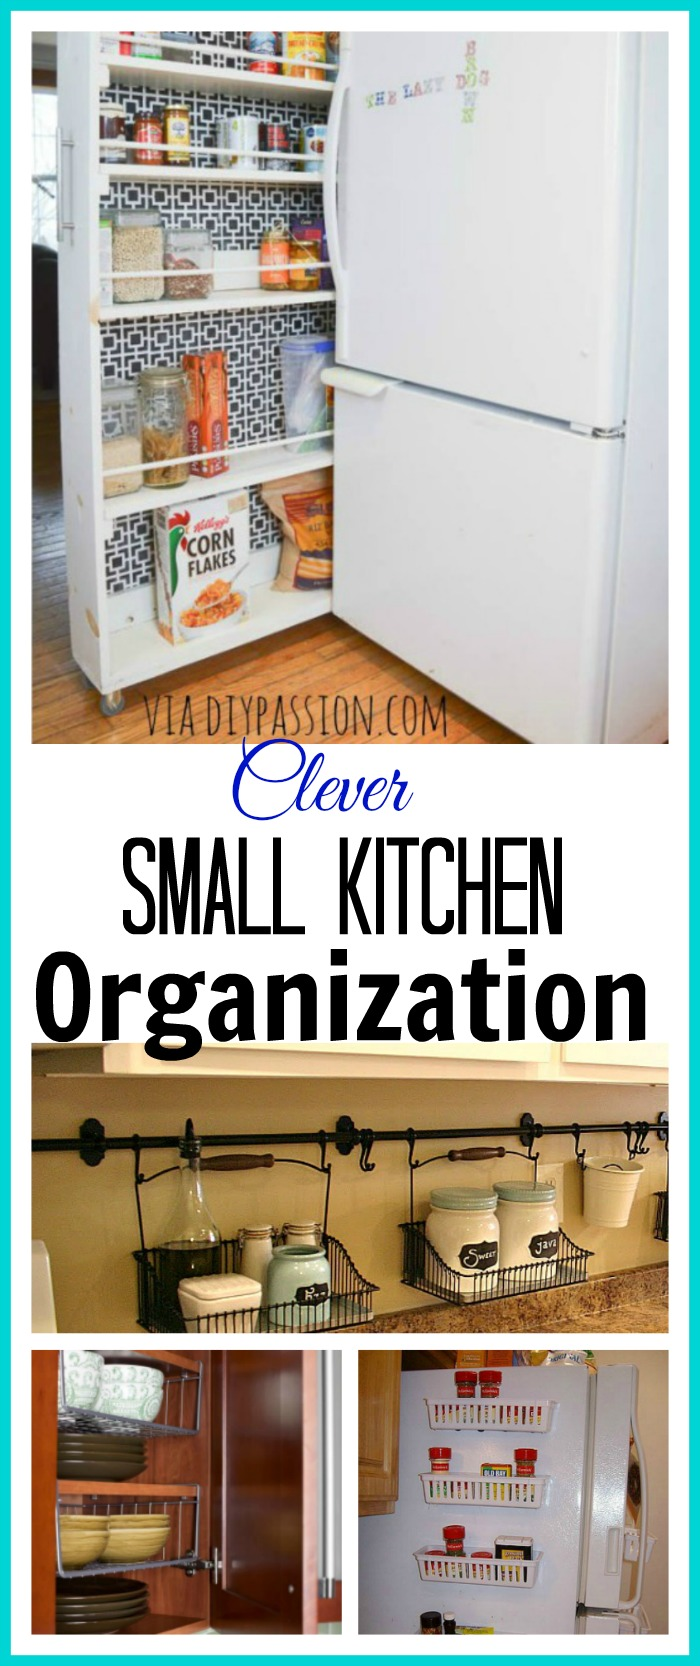 10 Ideas For Organizing A Small Kitchen Even If You Have Tiny